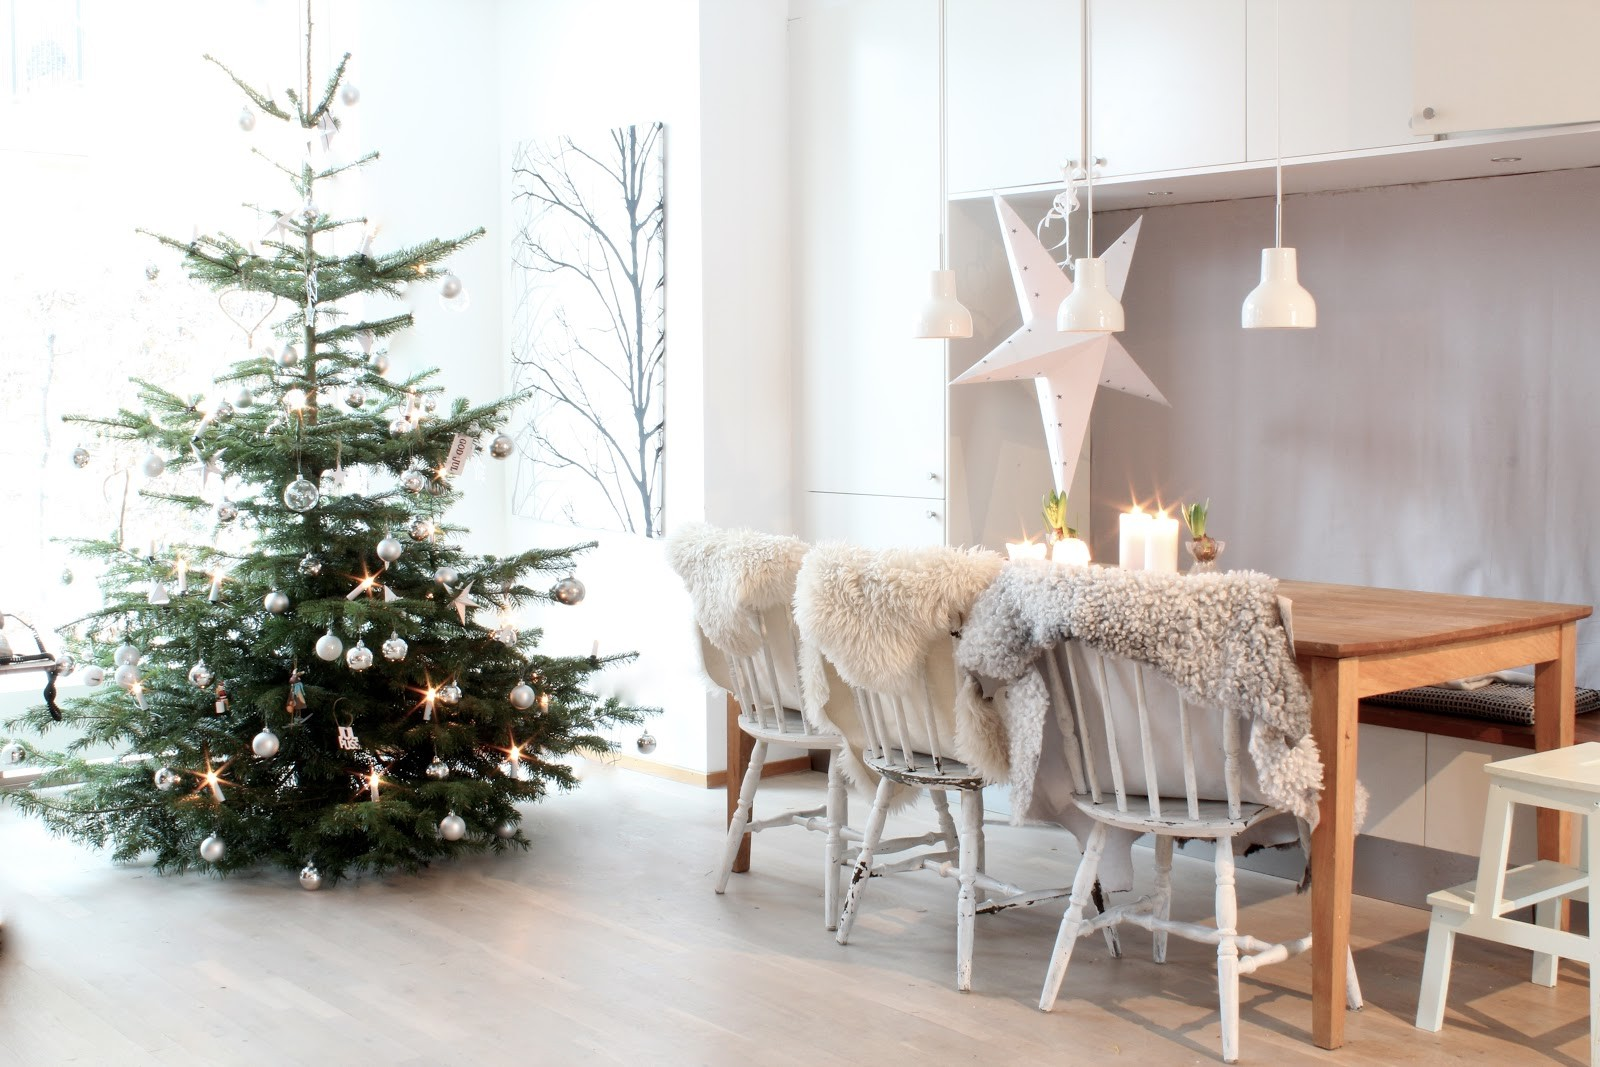 Fir tree plus fur rugs = cosy Christmas!   Image source